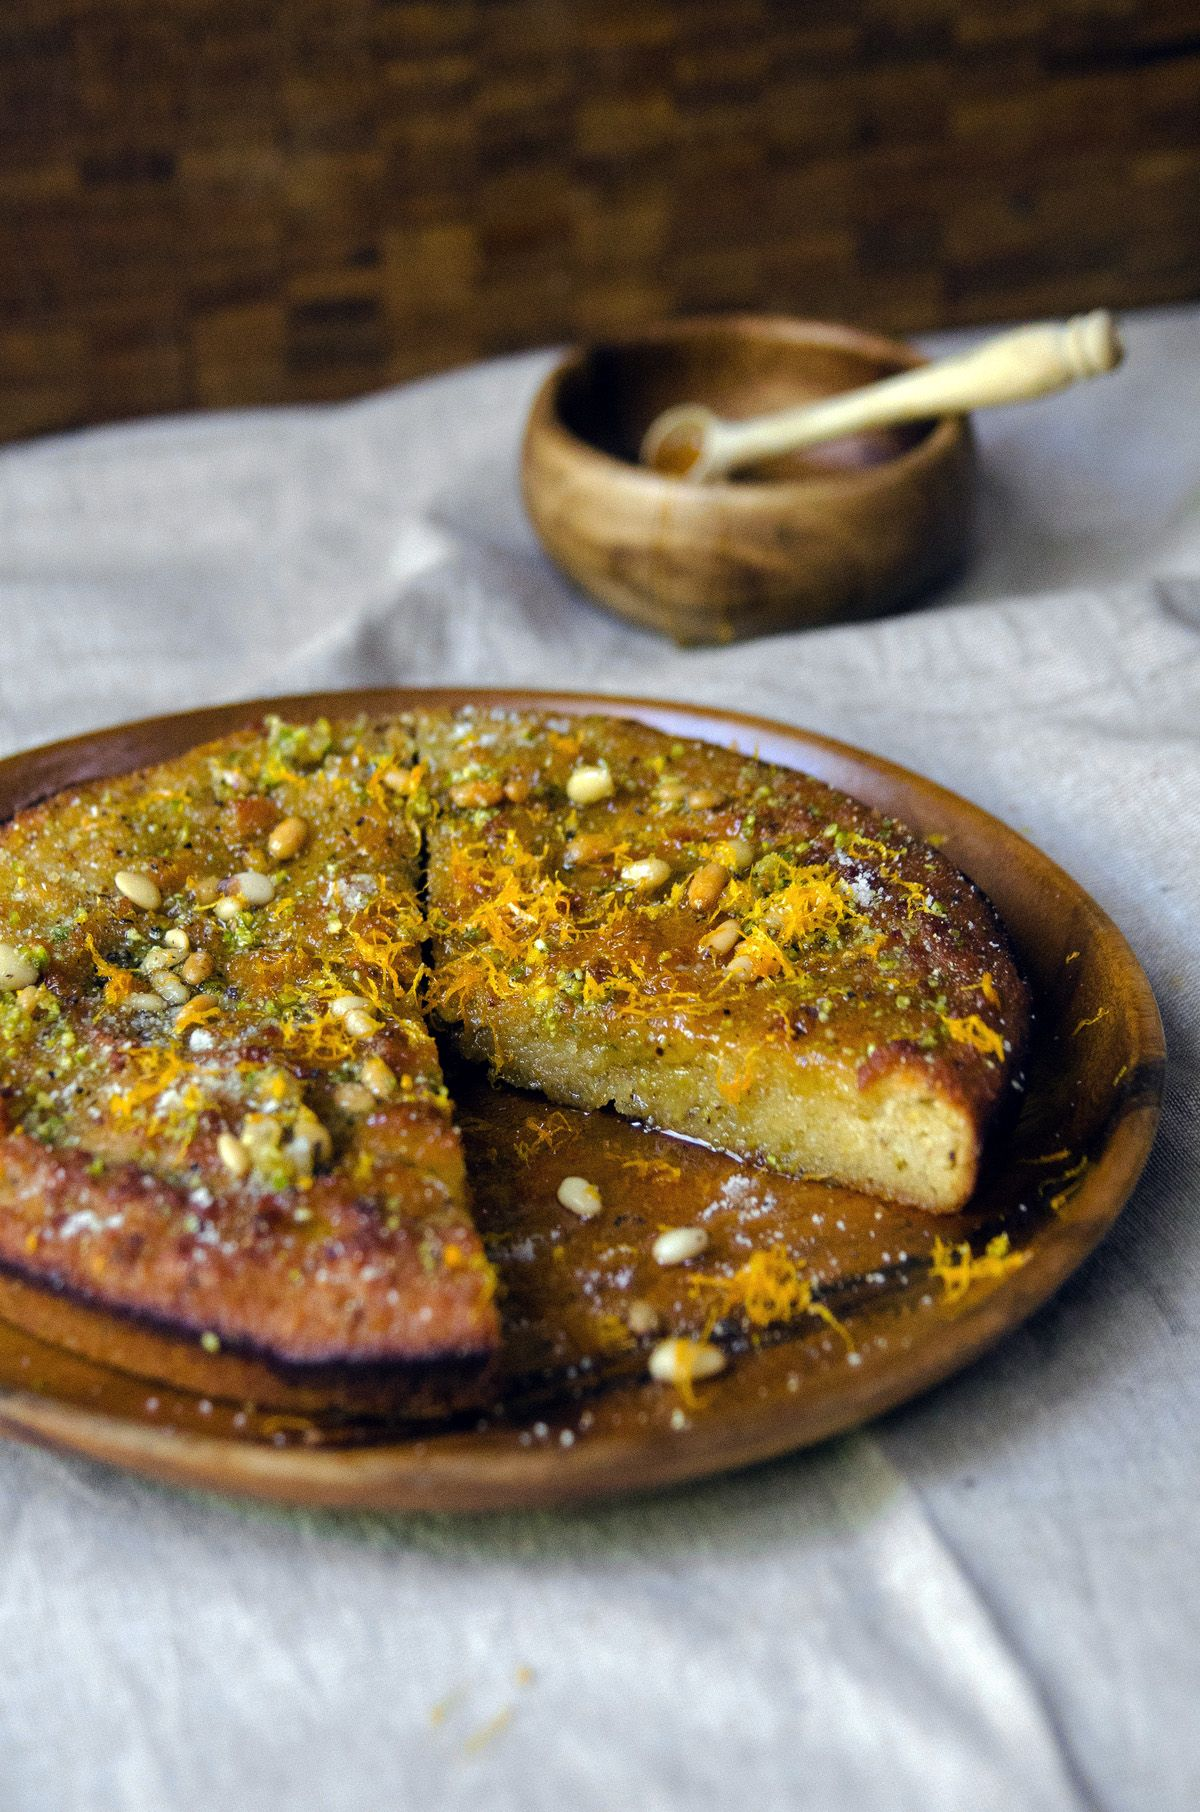 Aliter dulcia another sweet ancient romans roman and recipes aliter dulcia another sweet ancient recipesegyptian recipesviking recipesmedieval recipesancient romeancient roman foodroman recipedessert forumfinder Image collections